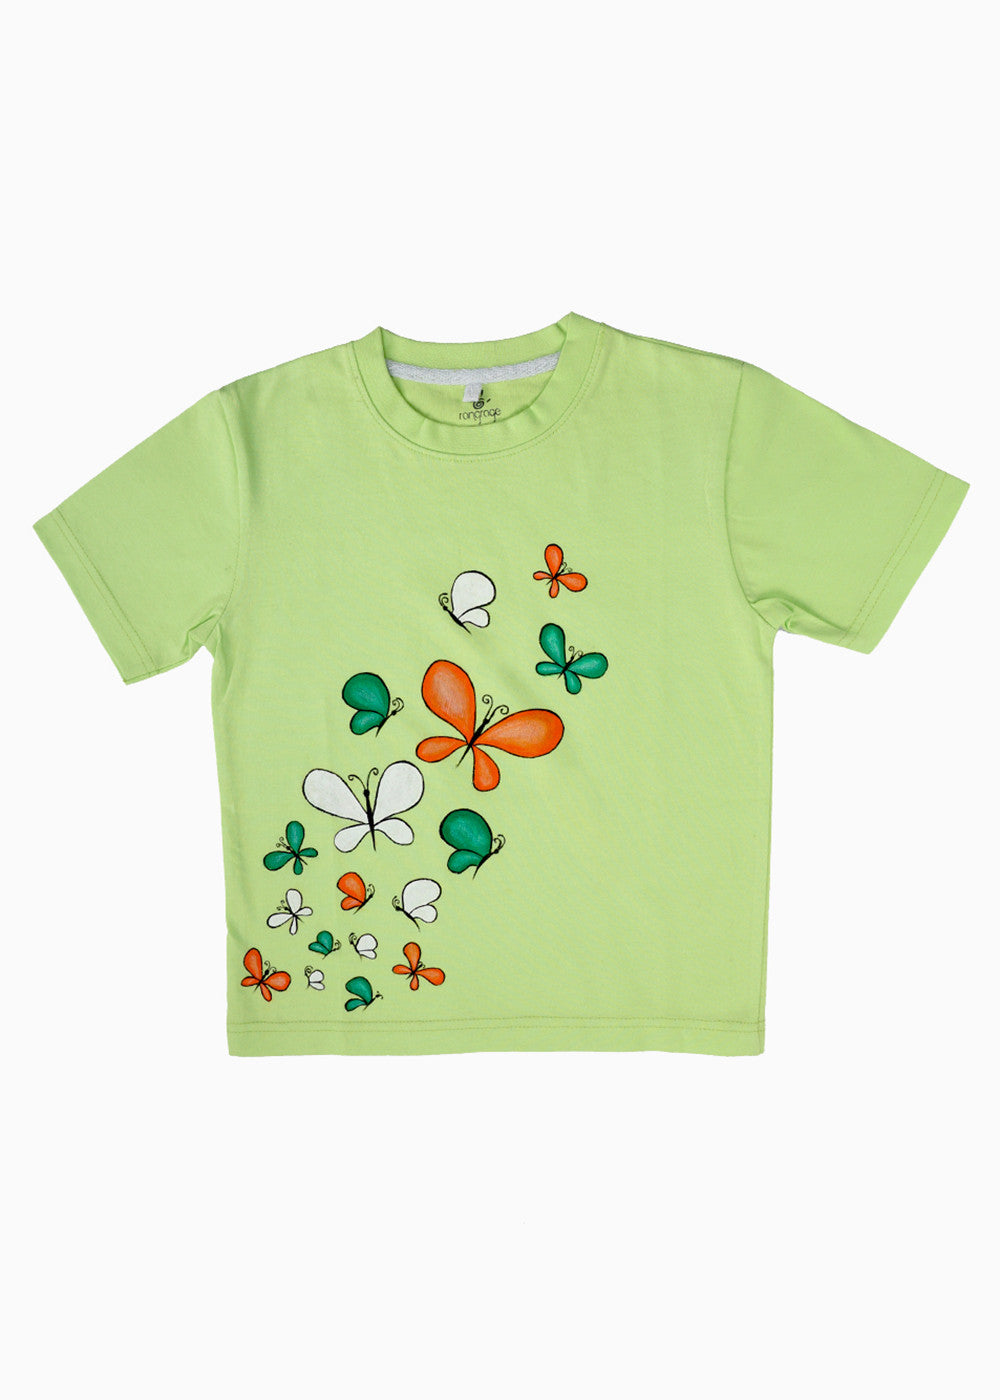 Hand-painted Flying Colors T-shirt - RANGRAGE  - 1